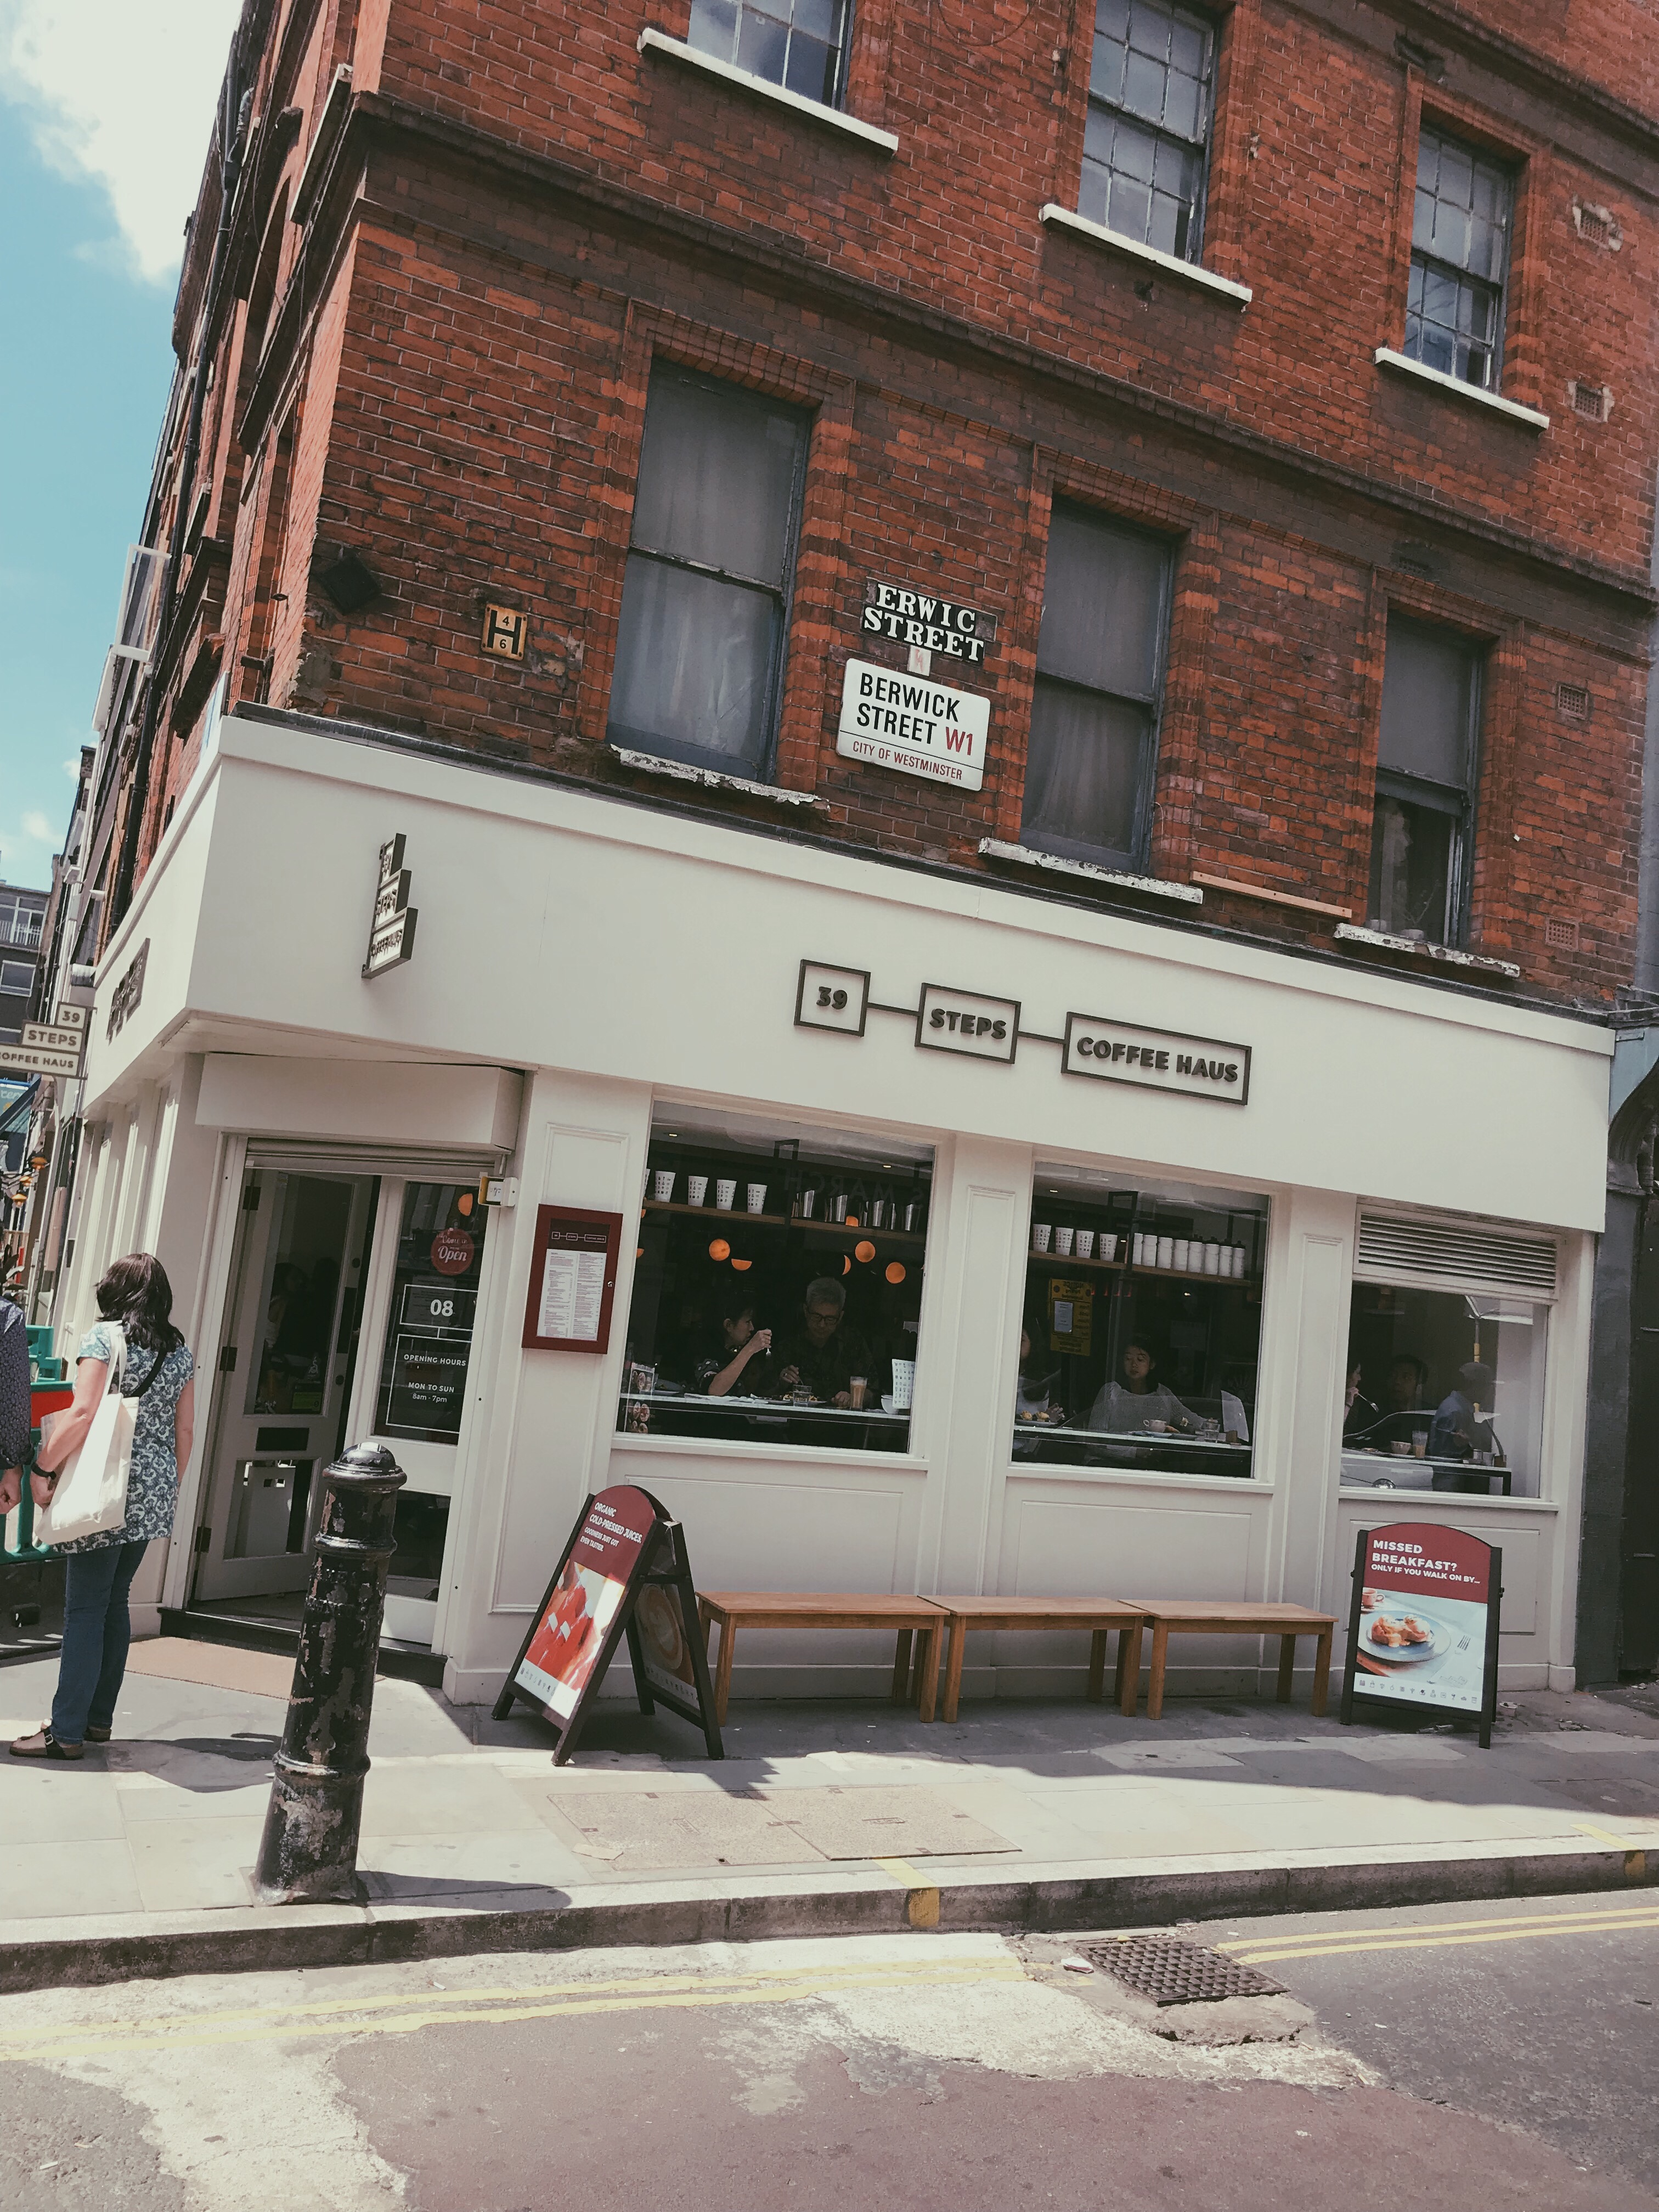 39 Steps Coffee Haus Review Twobrits